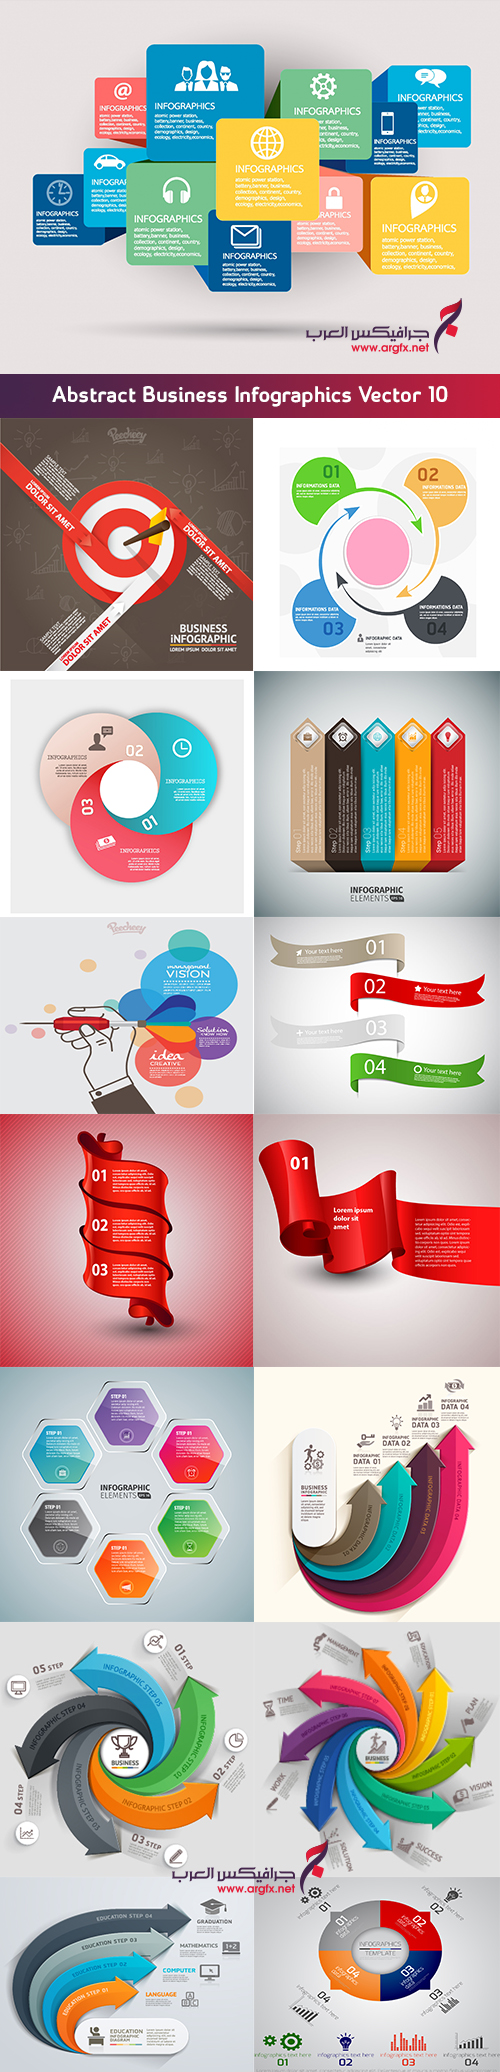 Abstract business infographics vector 10